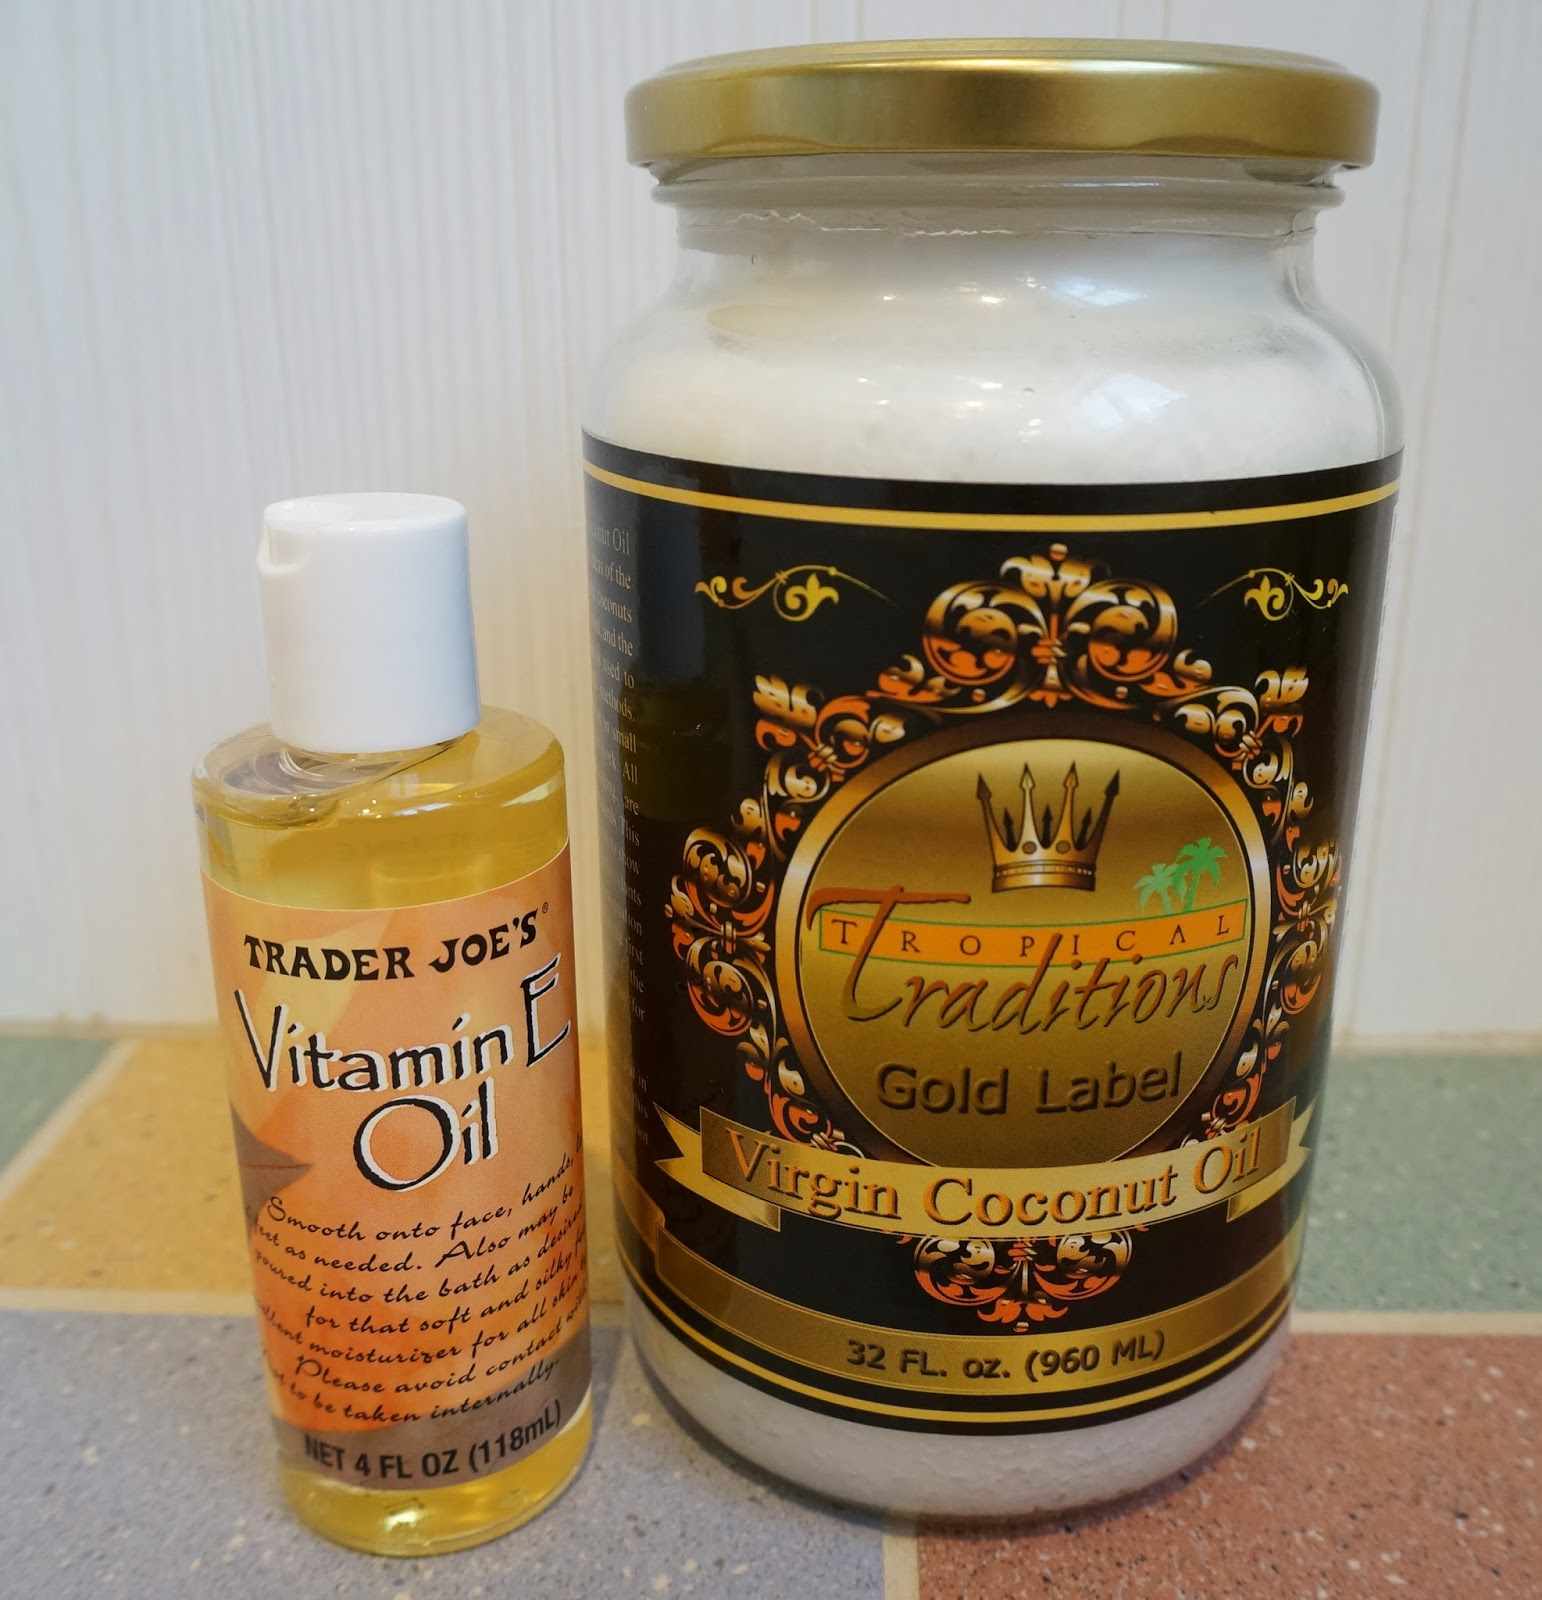 Vitamin E Oil and Coconut Oil for lotion recipe